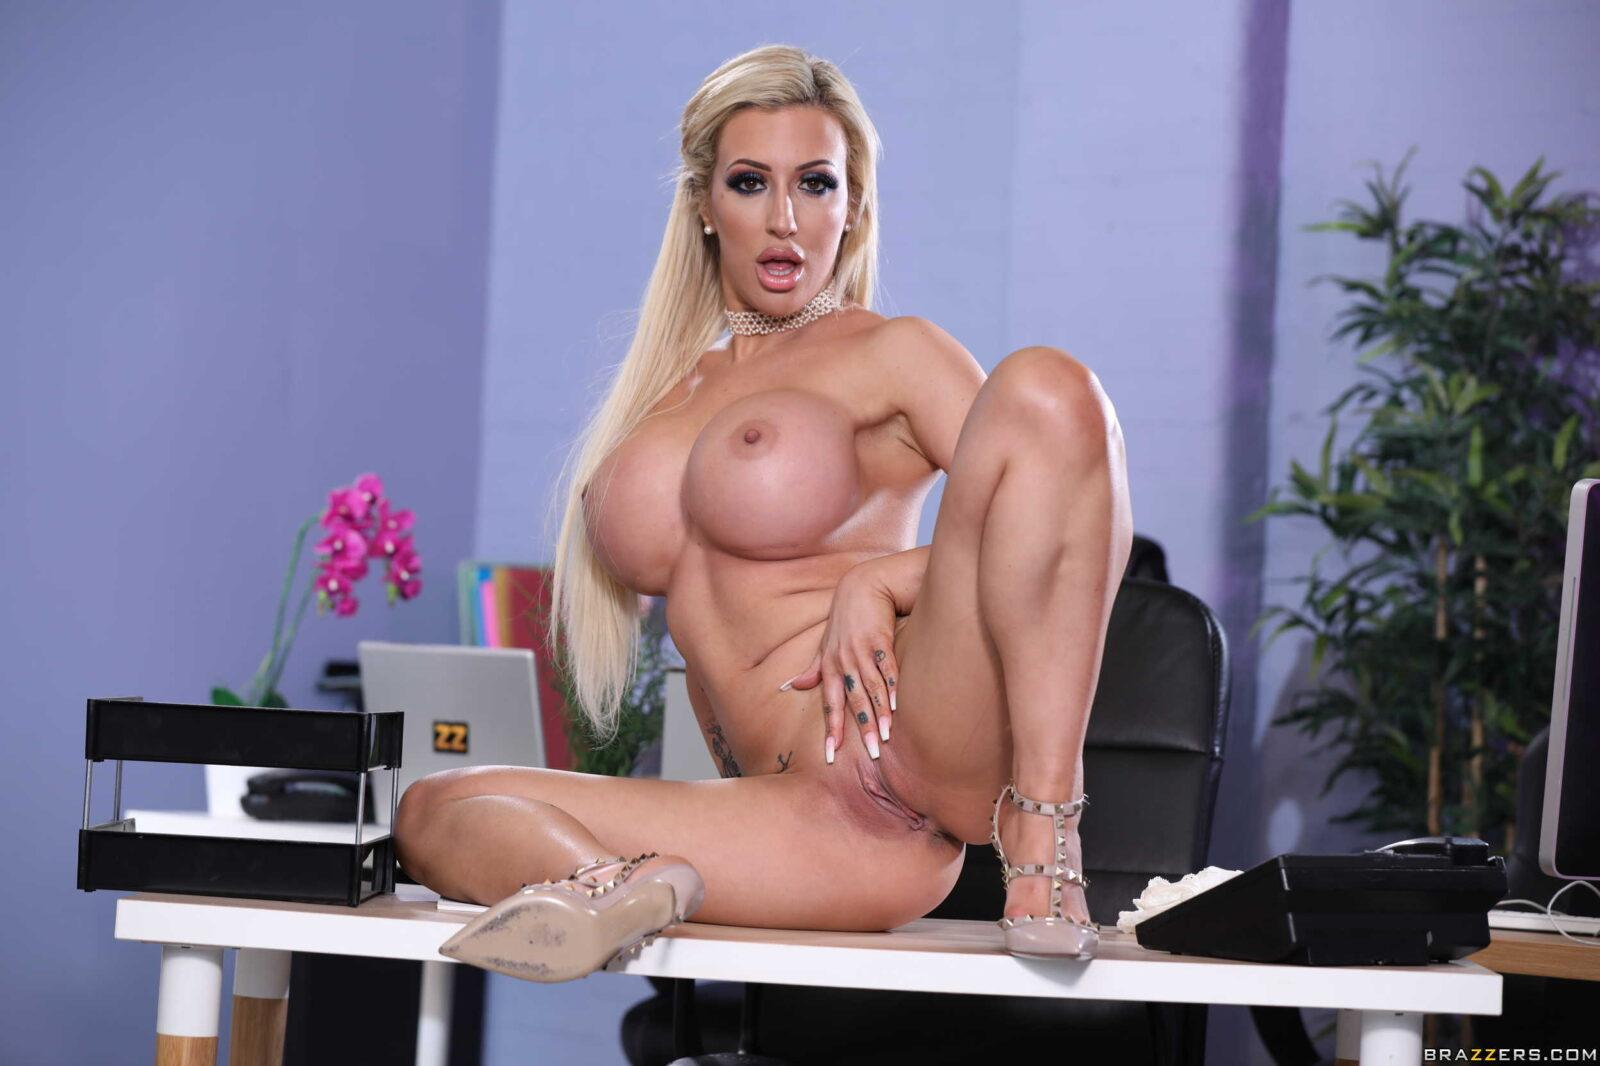 Skyler Mckay - Big Tits at Work